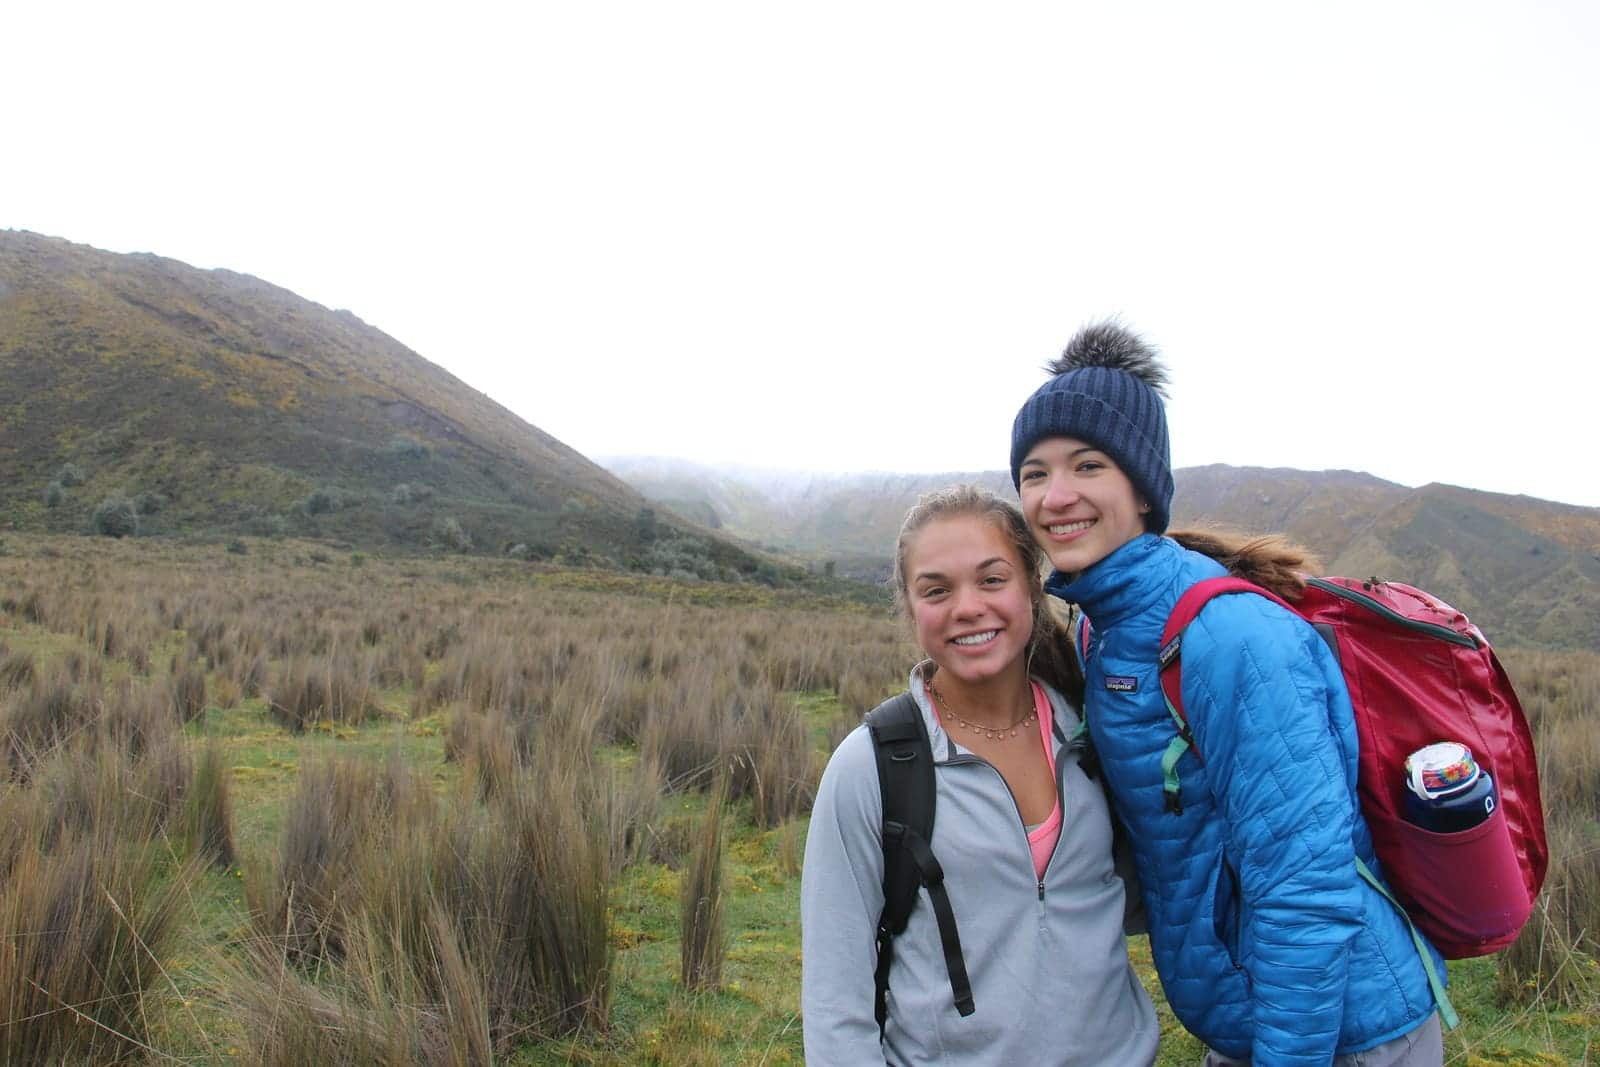 Two teenagers take a break from hiking to snap a picture on a field studies program in Ecuador this Summer